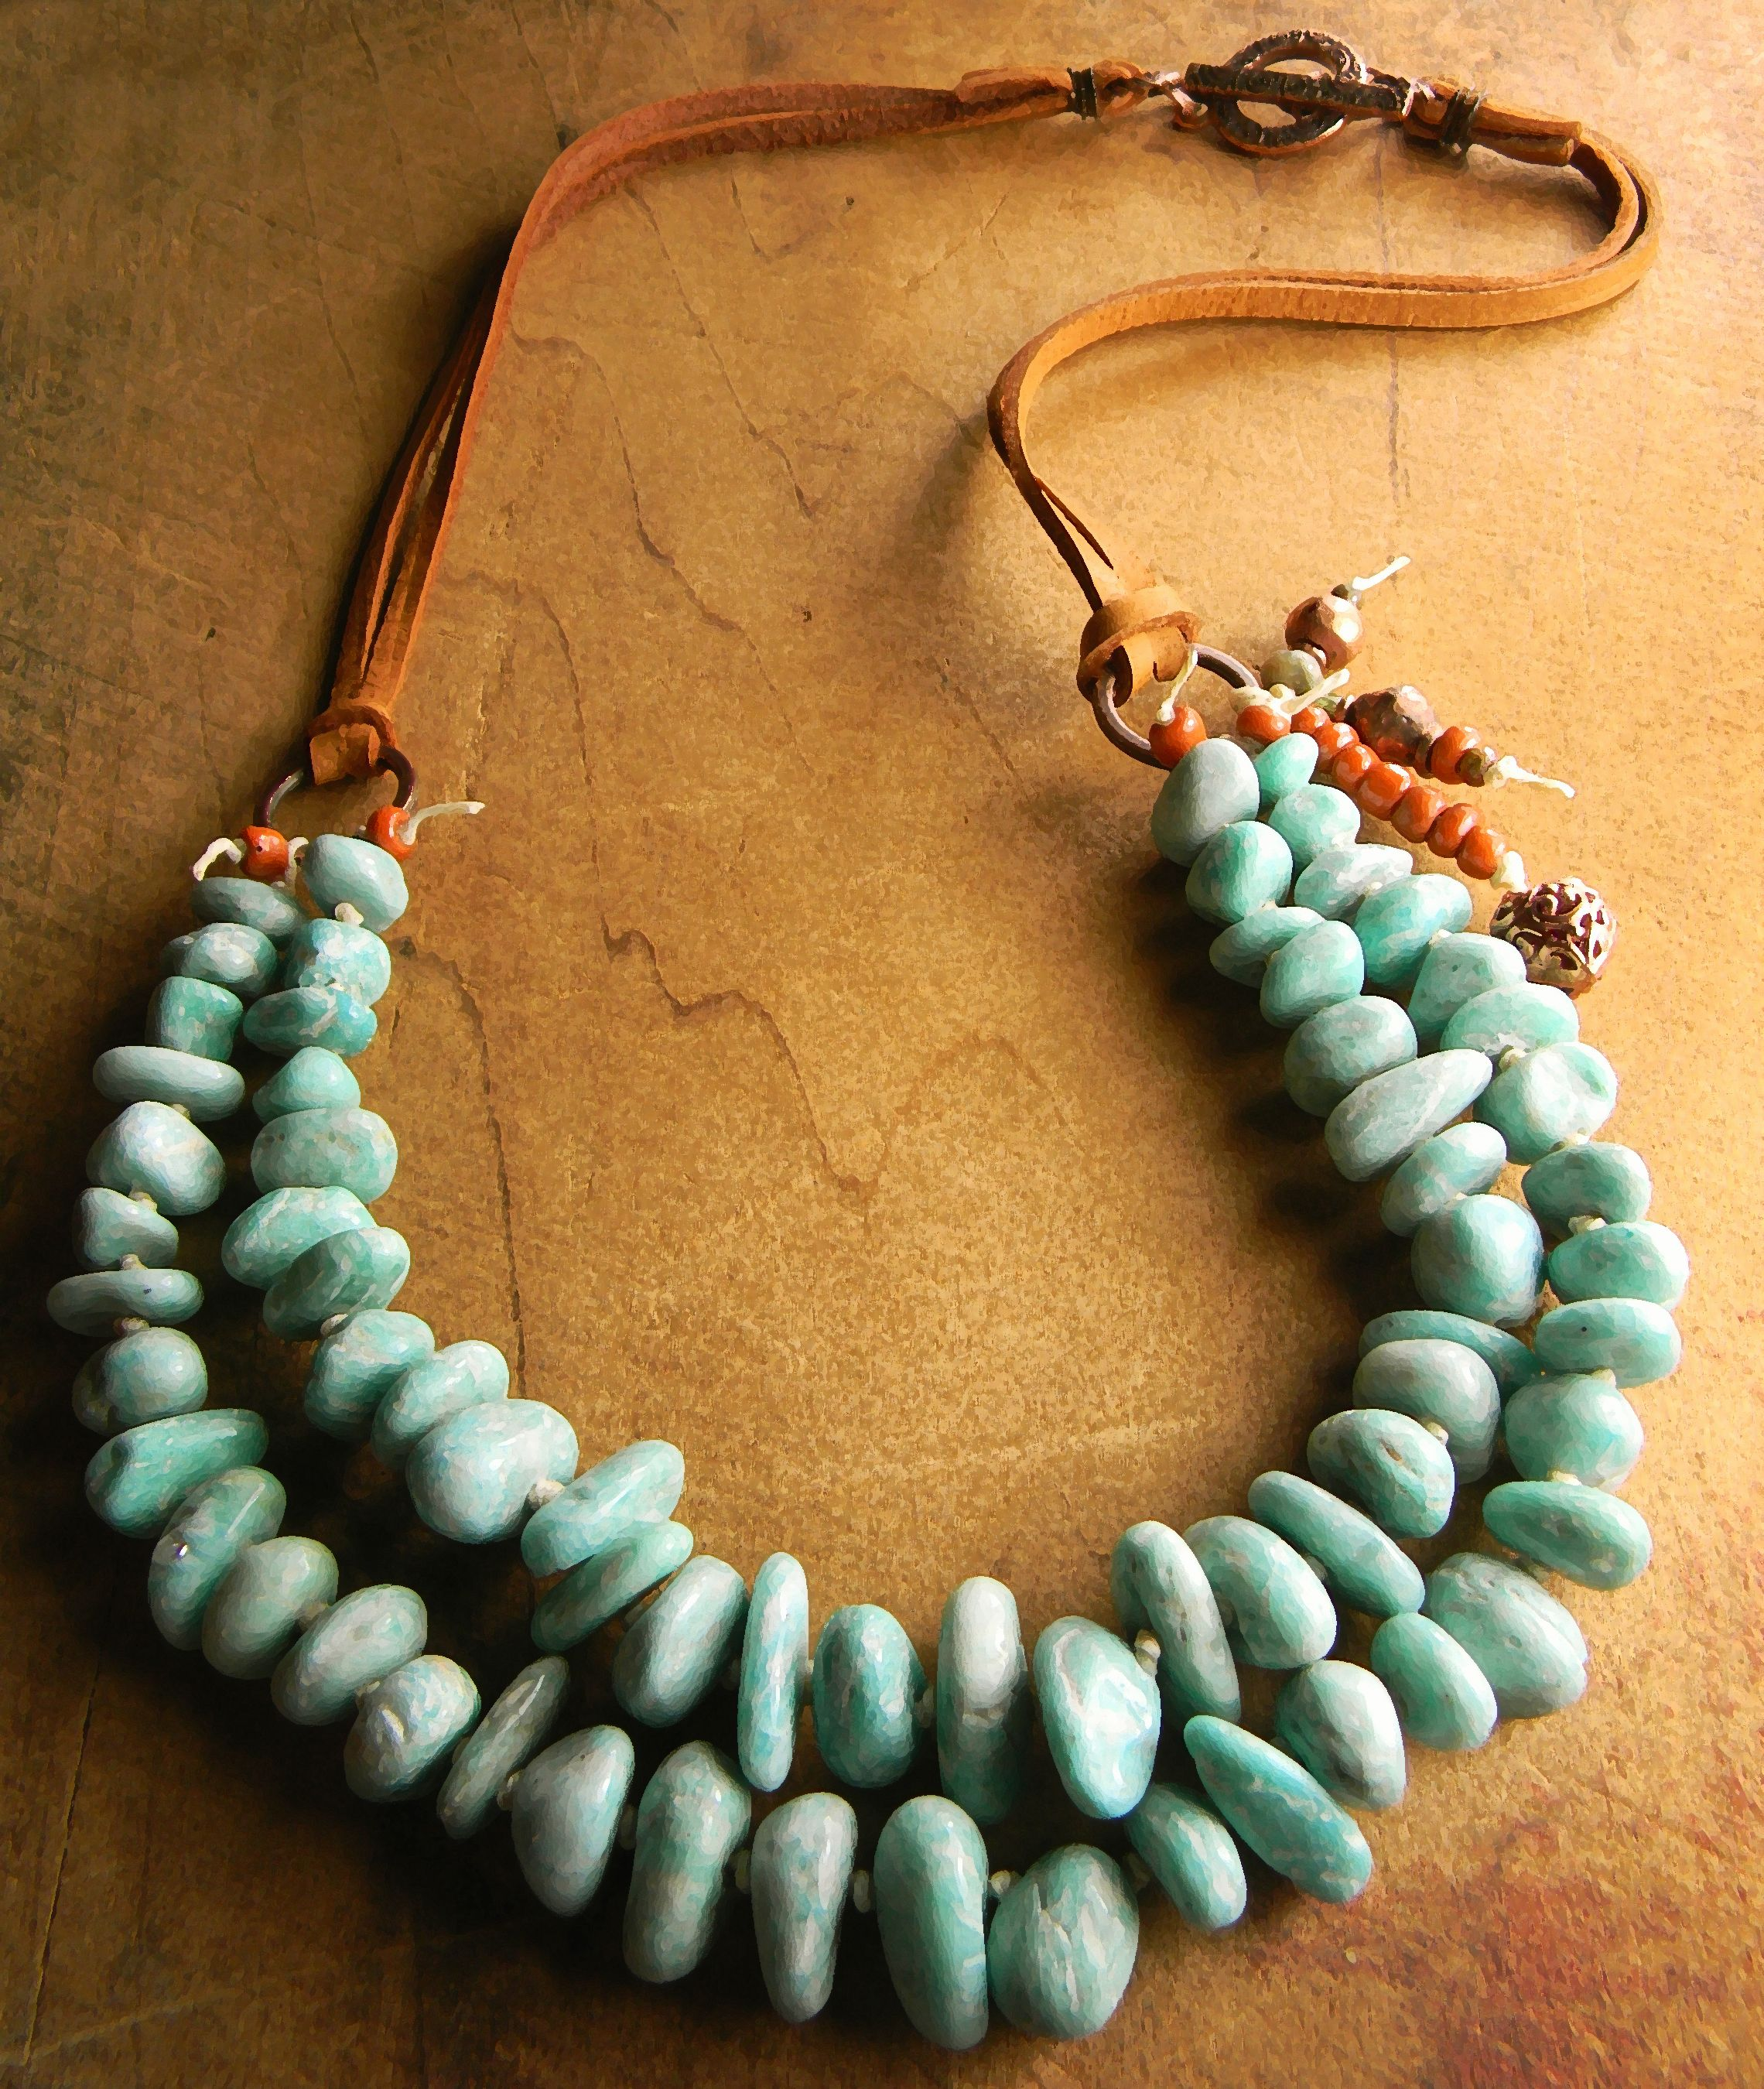 A boho southwestern necklace design with two strands of knotted amazonite nugget beads on Irish waxed linen cord. Russian green amazonite in a gorgeous shade of green accented by rusty orange Indonesian beads and copper with deerskin leather lacing to form the back of the necklace. An antiqued copper toggle is the perfect closure for this rustic necklace. The length is 20 inches.